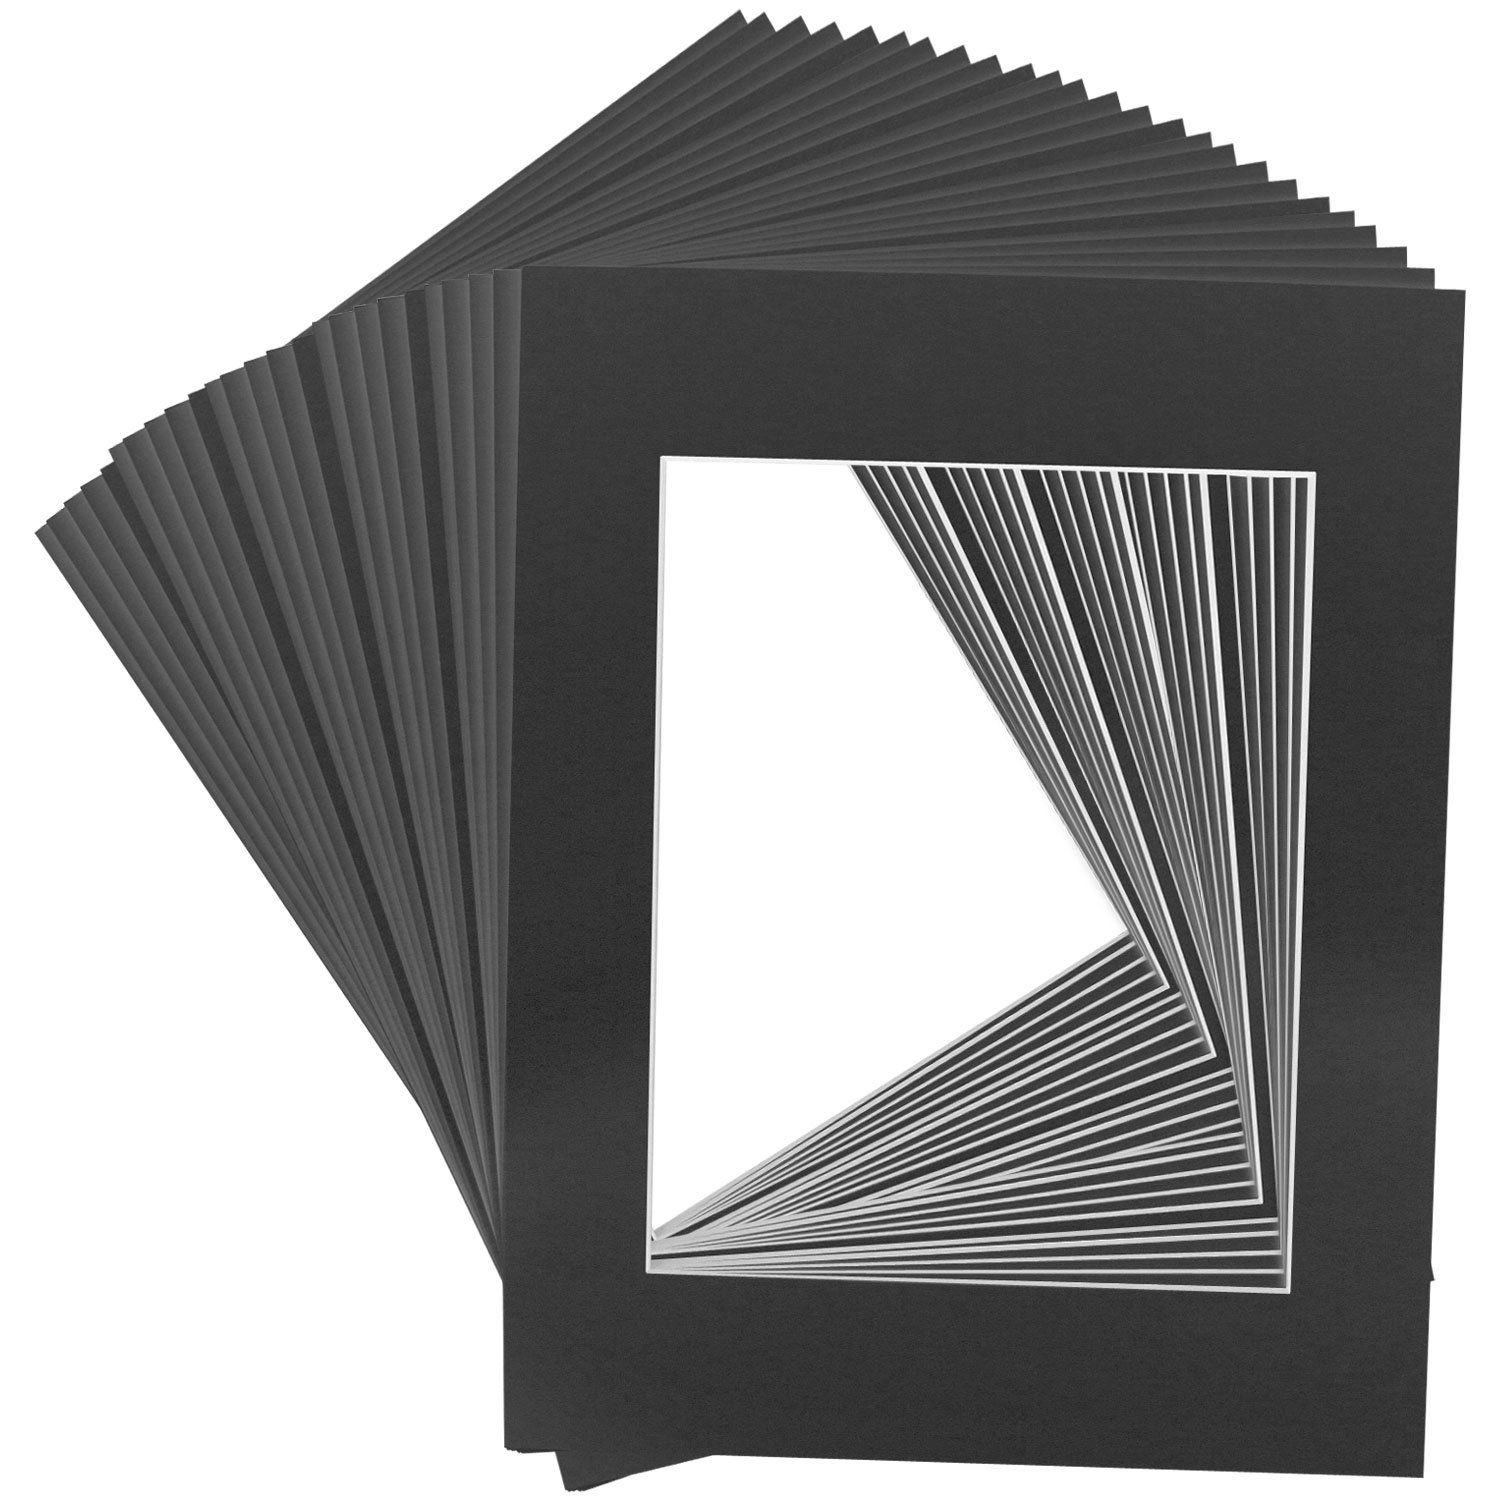 US Art Supply Art Mats Acid-Free Pre-Cut 16x20 Black Picture Mat Matte Sets. Includes a Pack of 25 White Core Bevel Cut Mattes for 11x14 Photos, Pack of 25 Backers & 25 Clear Sleeve Bags by US Art Supply (Image #2)